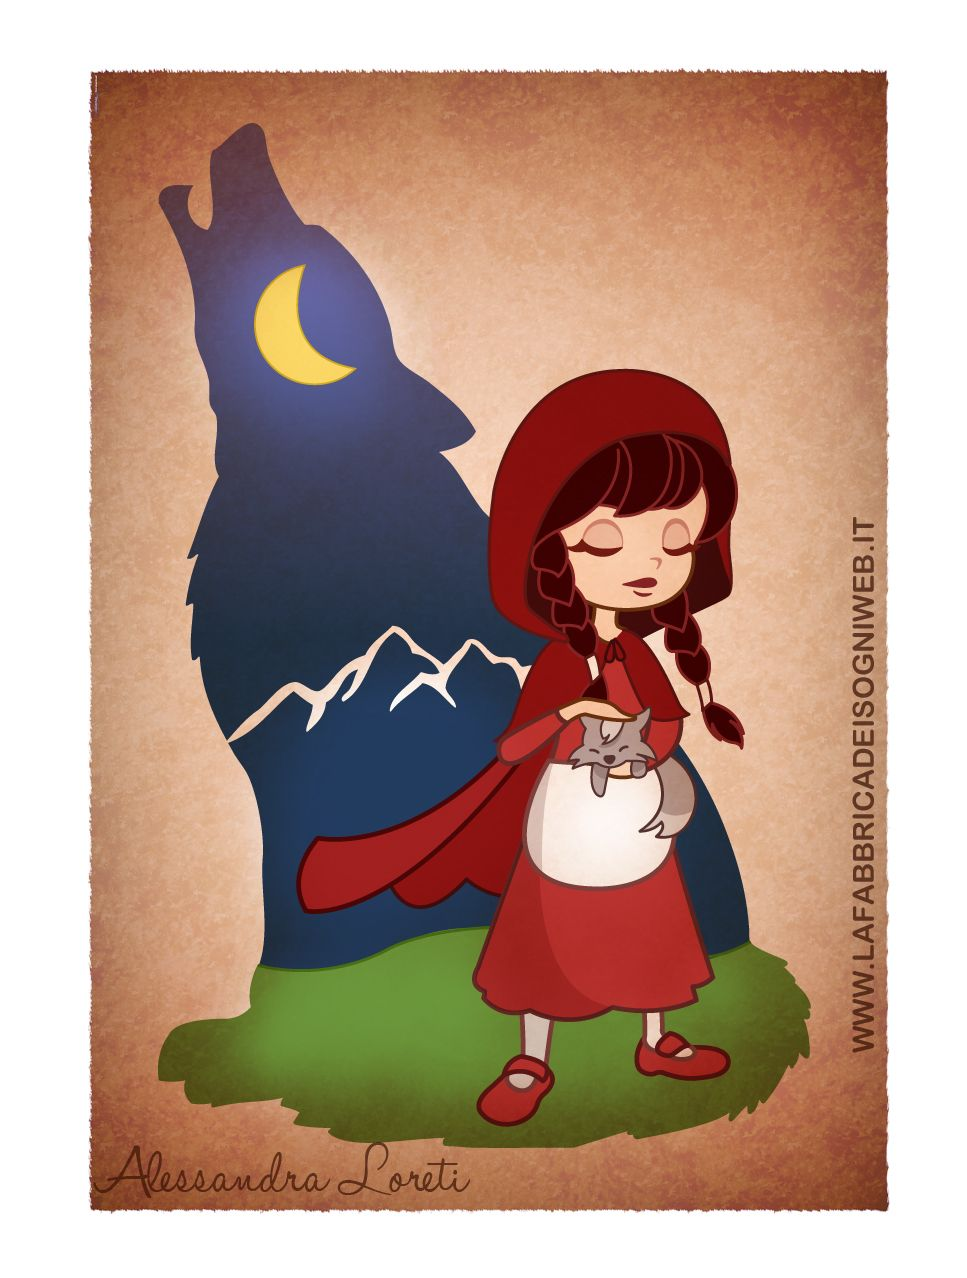 Red Riding Hood and her wolf by fabbrica-dei-sogni.deviantart.com on @deviantART